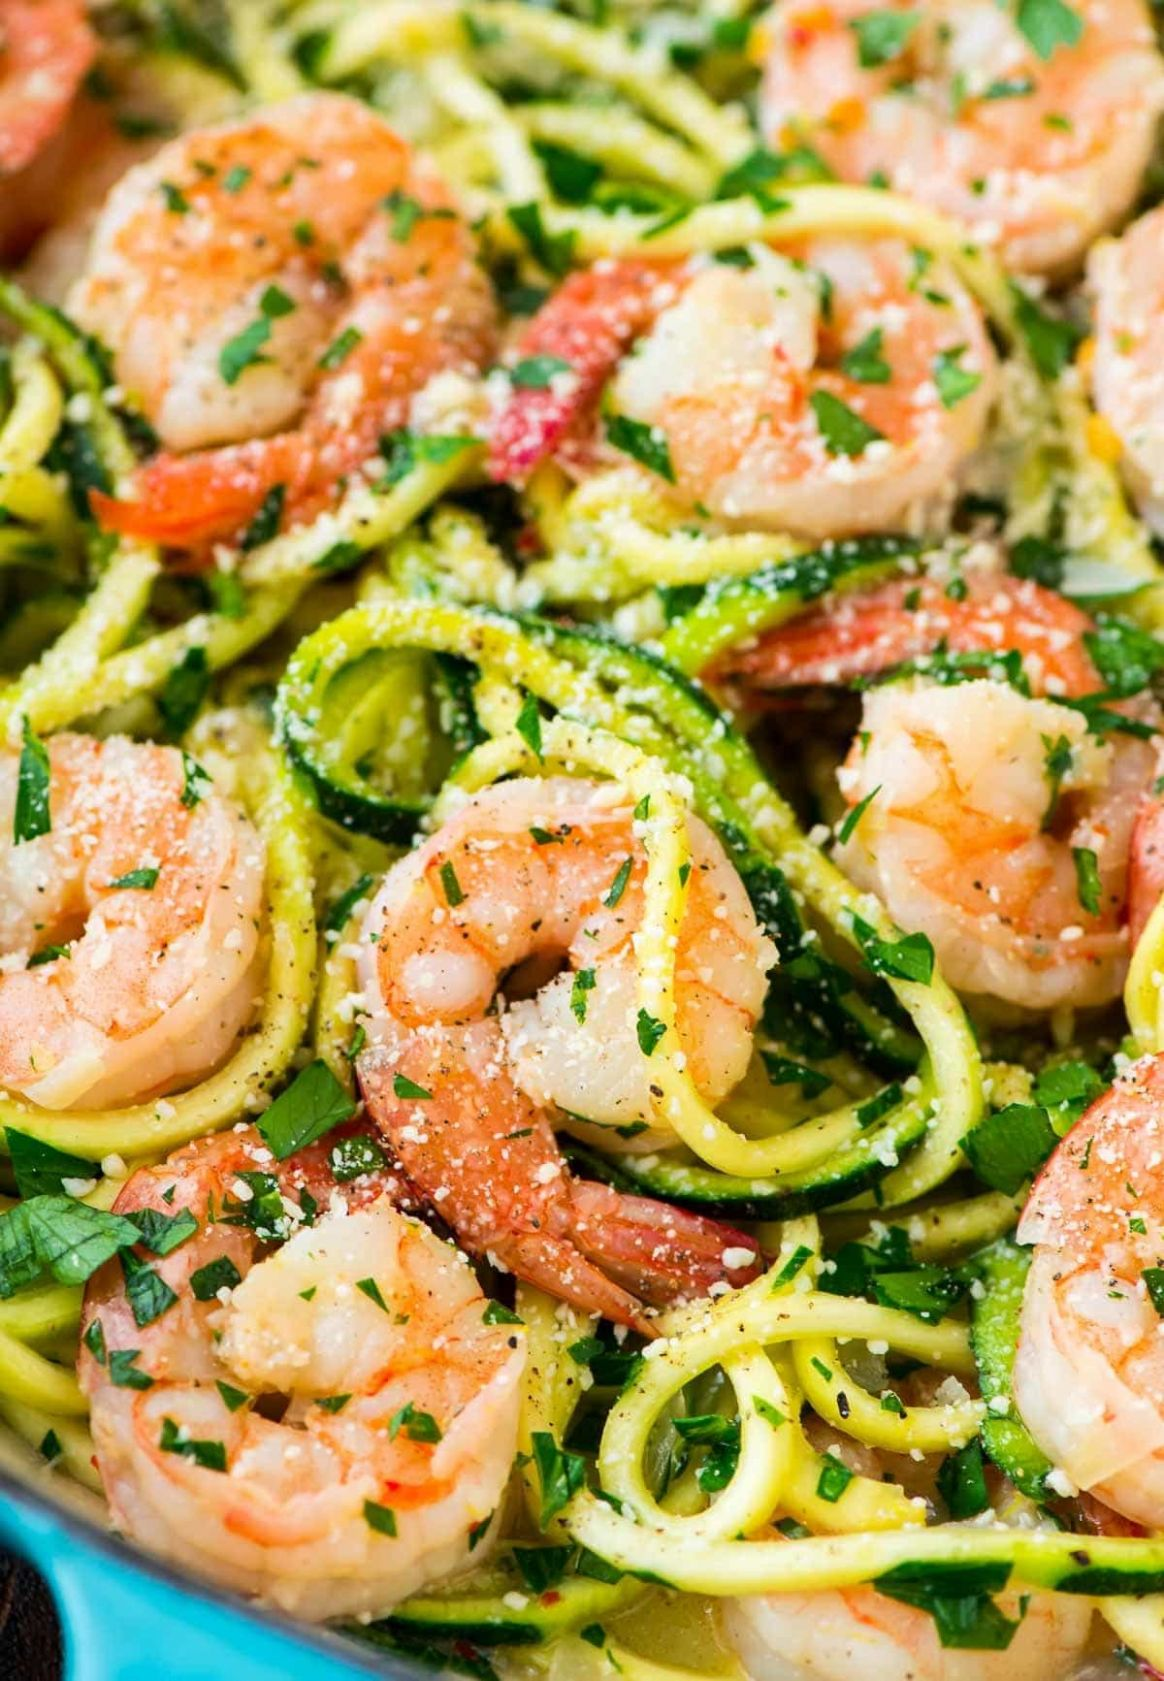 Healthy Shrimp Scampi with Zucchini Noodles - Healthy Recipes Zucchini Noodles